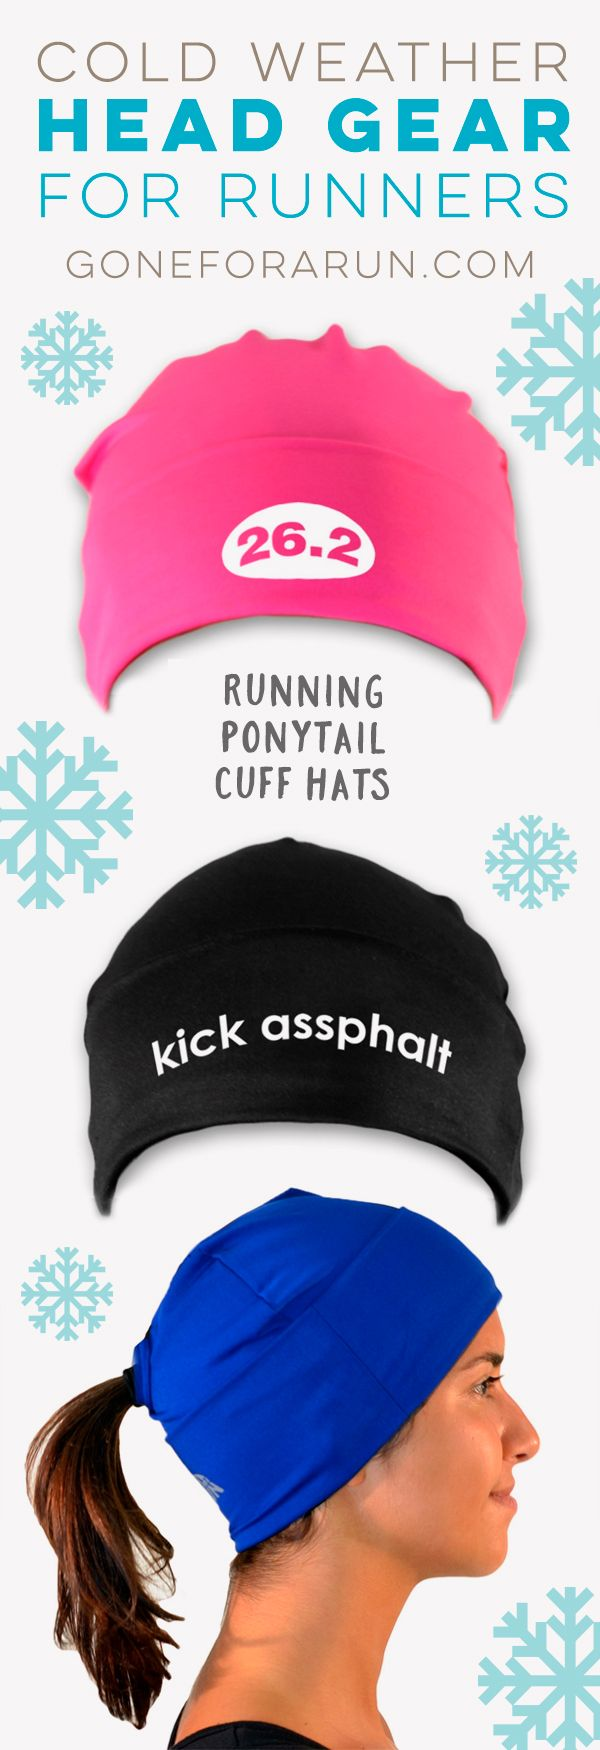 Our moisture-wicking ponytail cuff hat features a ponytail opening in the back for a comfortable fit and has a front panel with a large, folded cuff that you can roll any way for a great look and your ideal fit. With a variety of colors and mantras, this is a great gift for any runner.